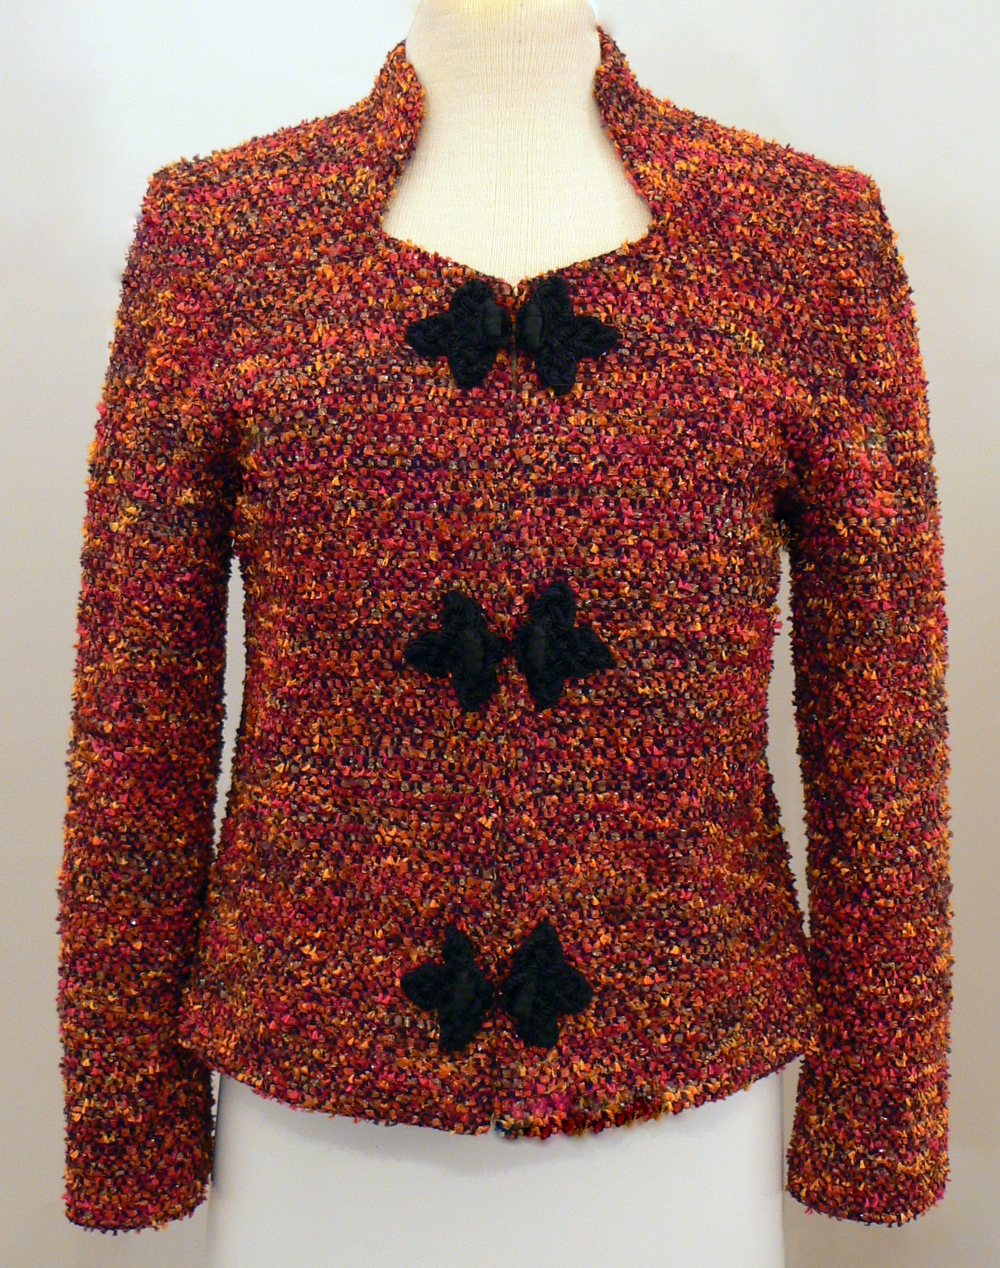 Handwoven Clothing, Jacket, Kathleen Weir-West, 8-001.JPG